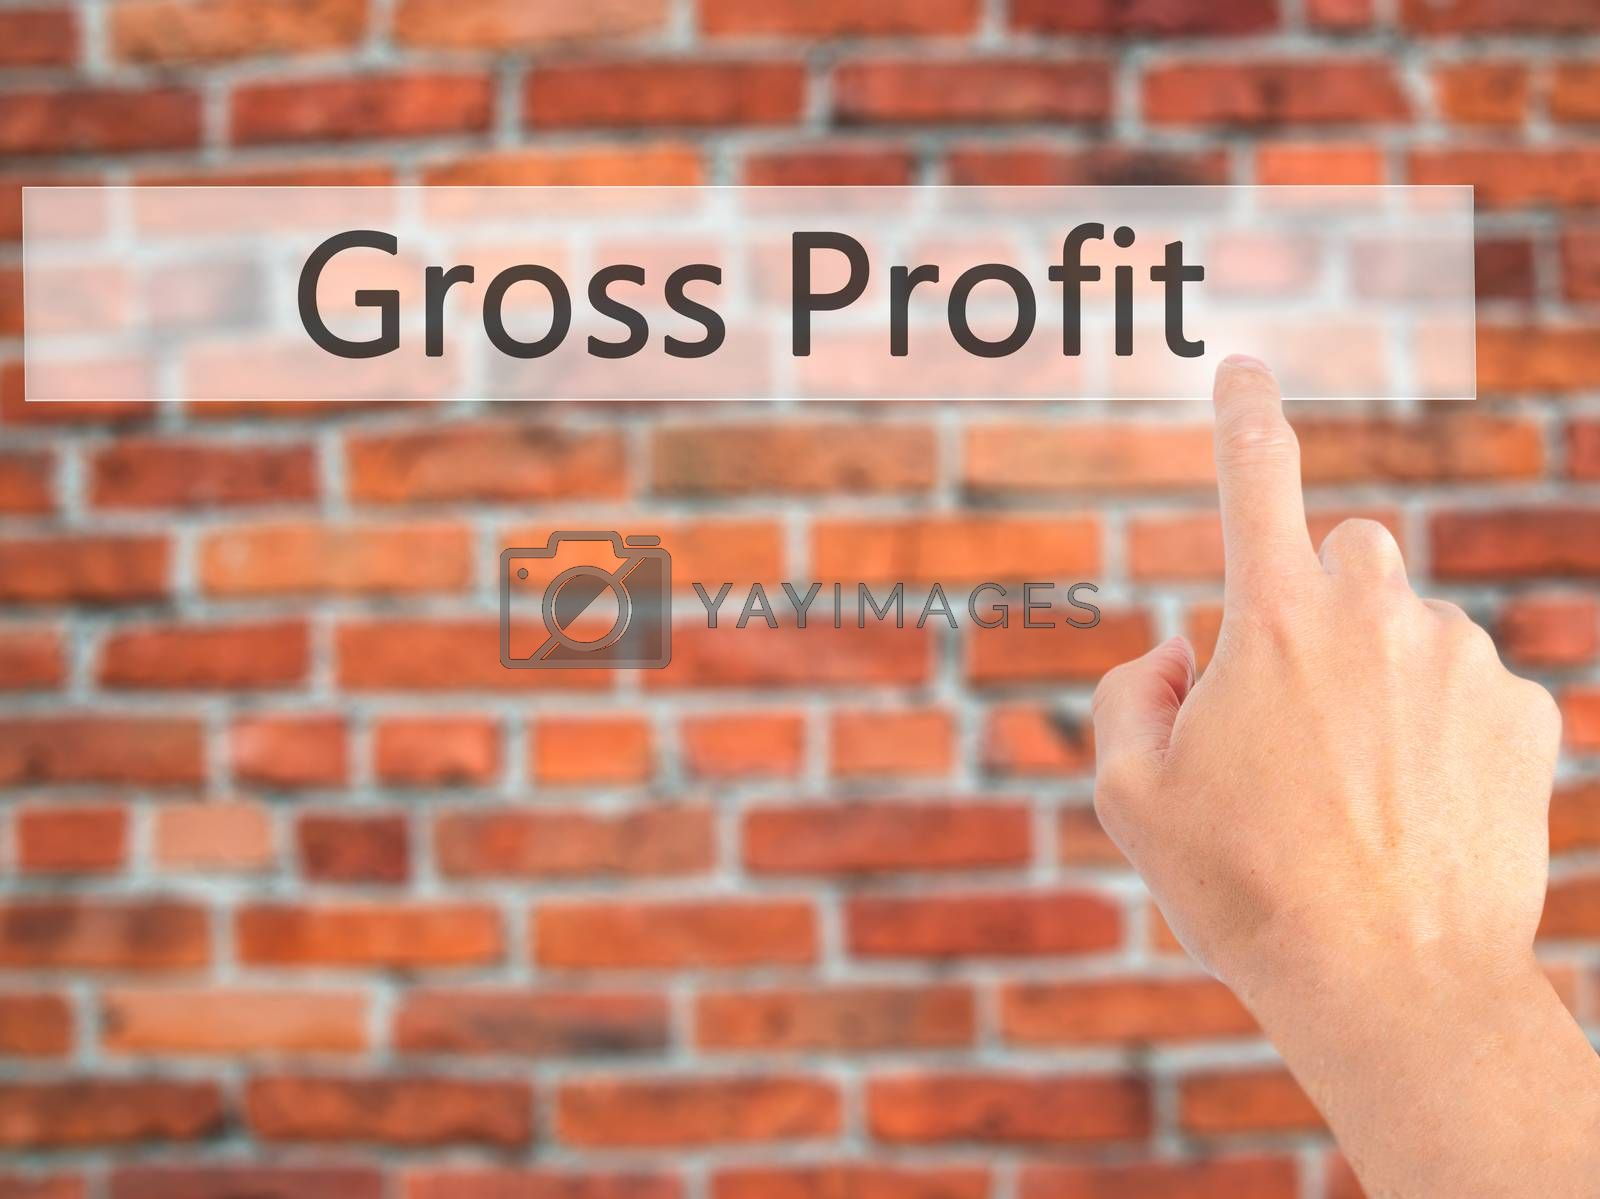 Gross Profit - Hand pressing a button on blurred background conc by netsay.net